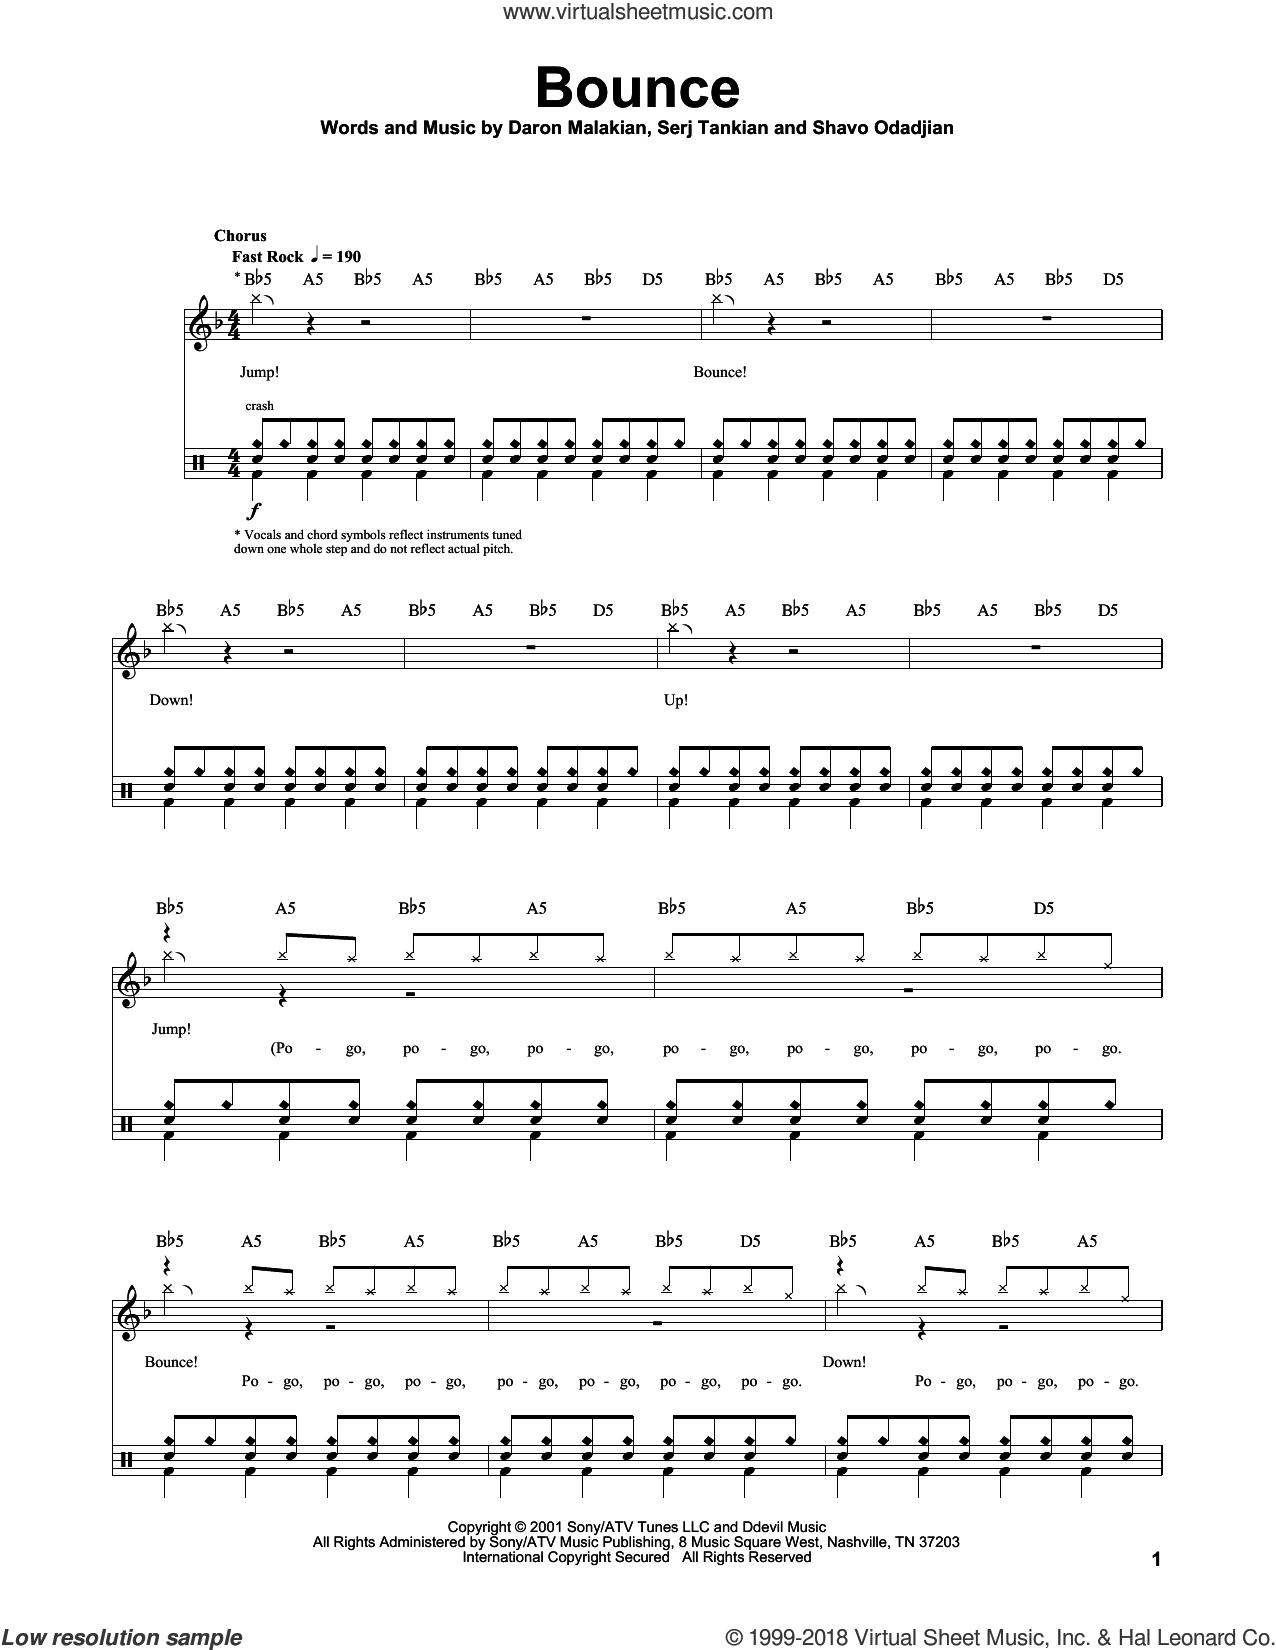 Bounce sheet music for drums by System Of A Down, Daron Malakian, Serj Tankian and Shavo Odadjian, intermediate skill level